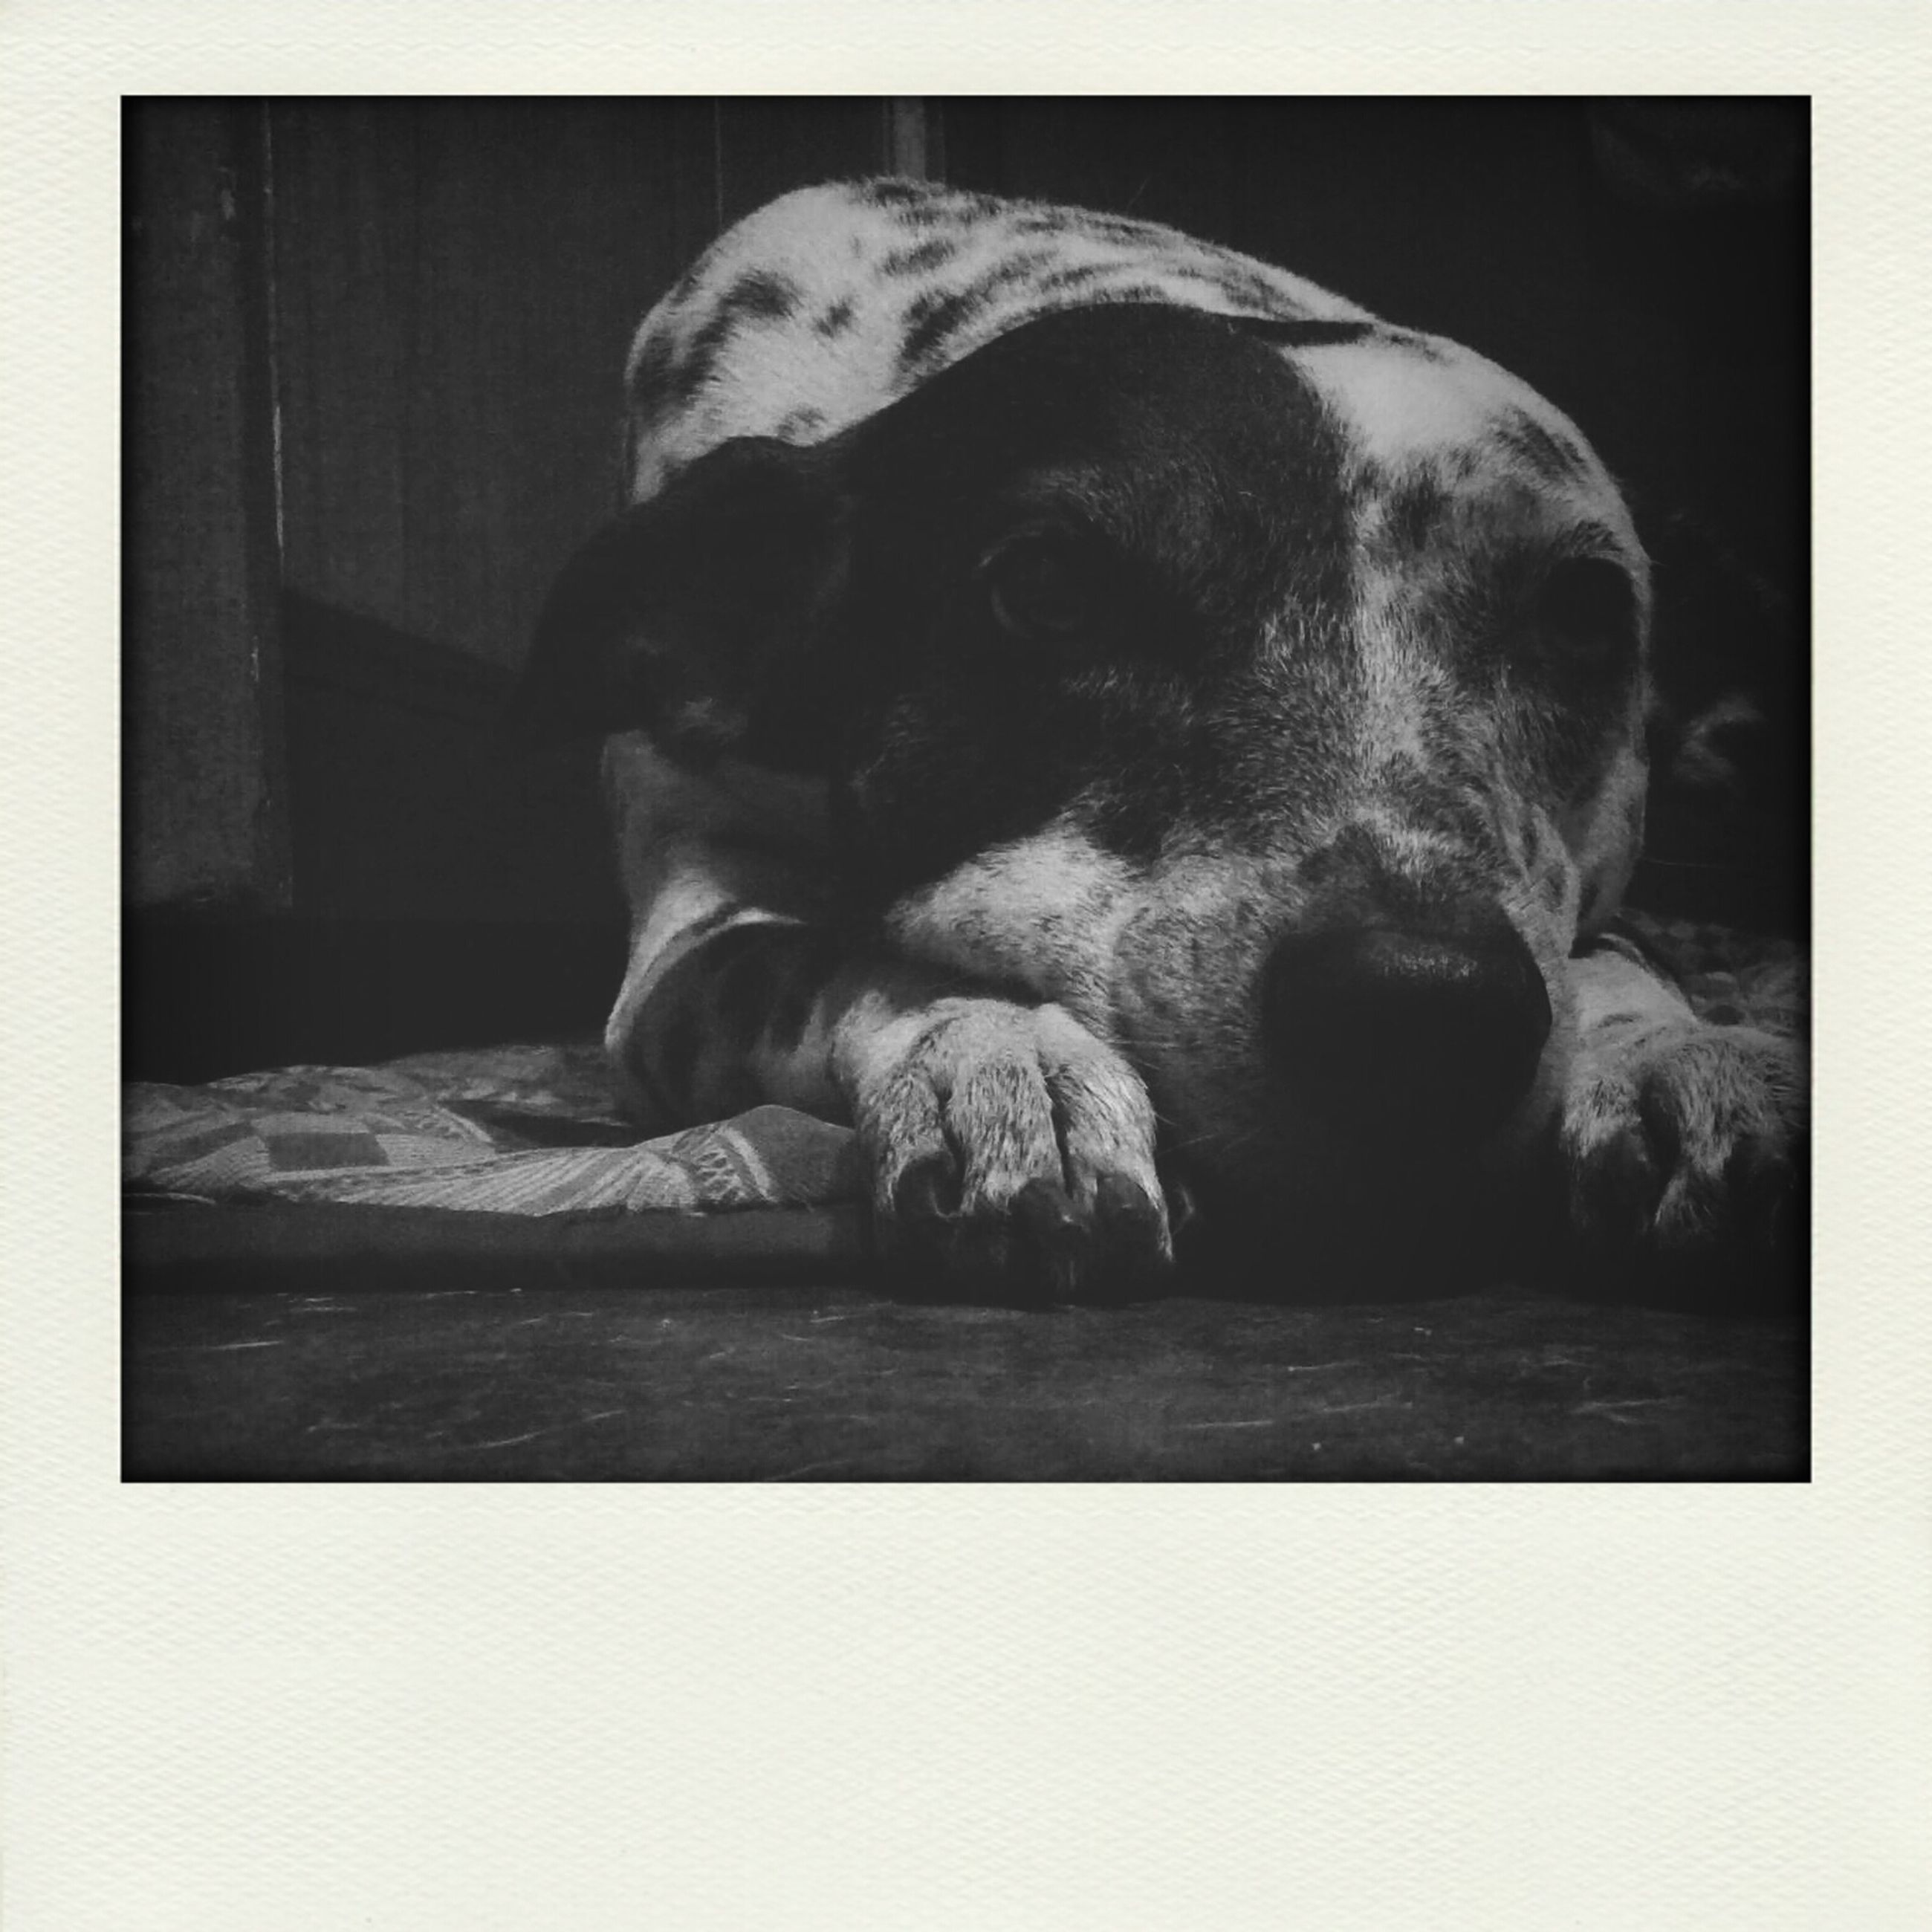 dog, pets, domestic animals, one animal, animal themes, mammal, indoors, relaxation, no people, animal head, close-up, sleeping, lying down, portrait, day